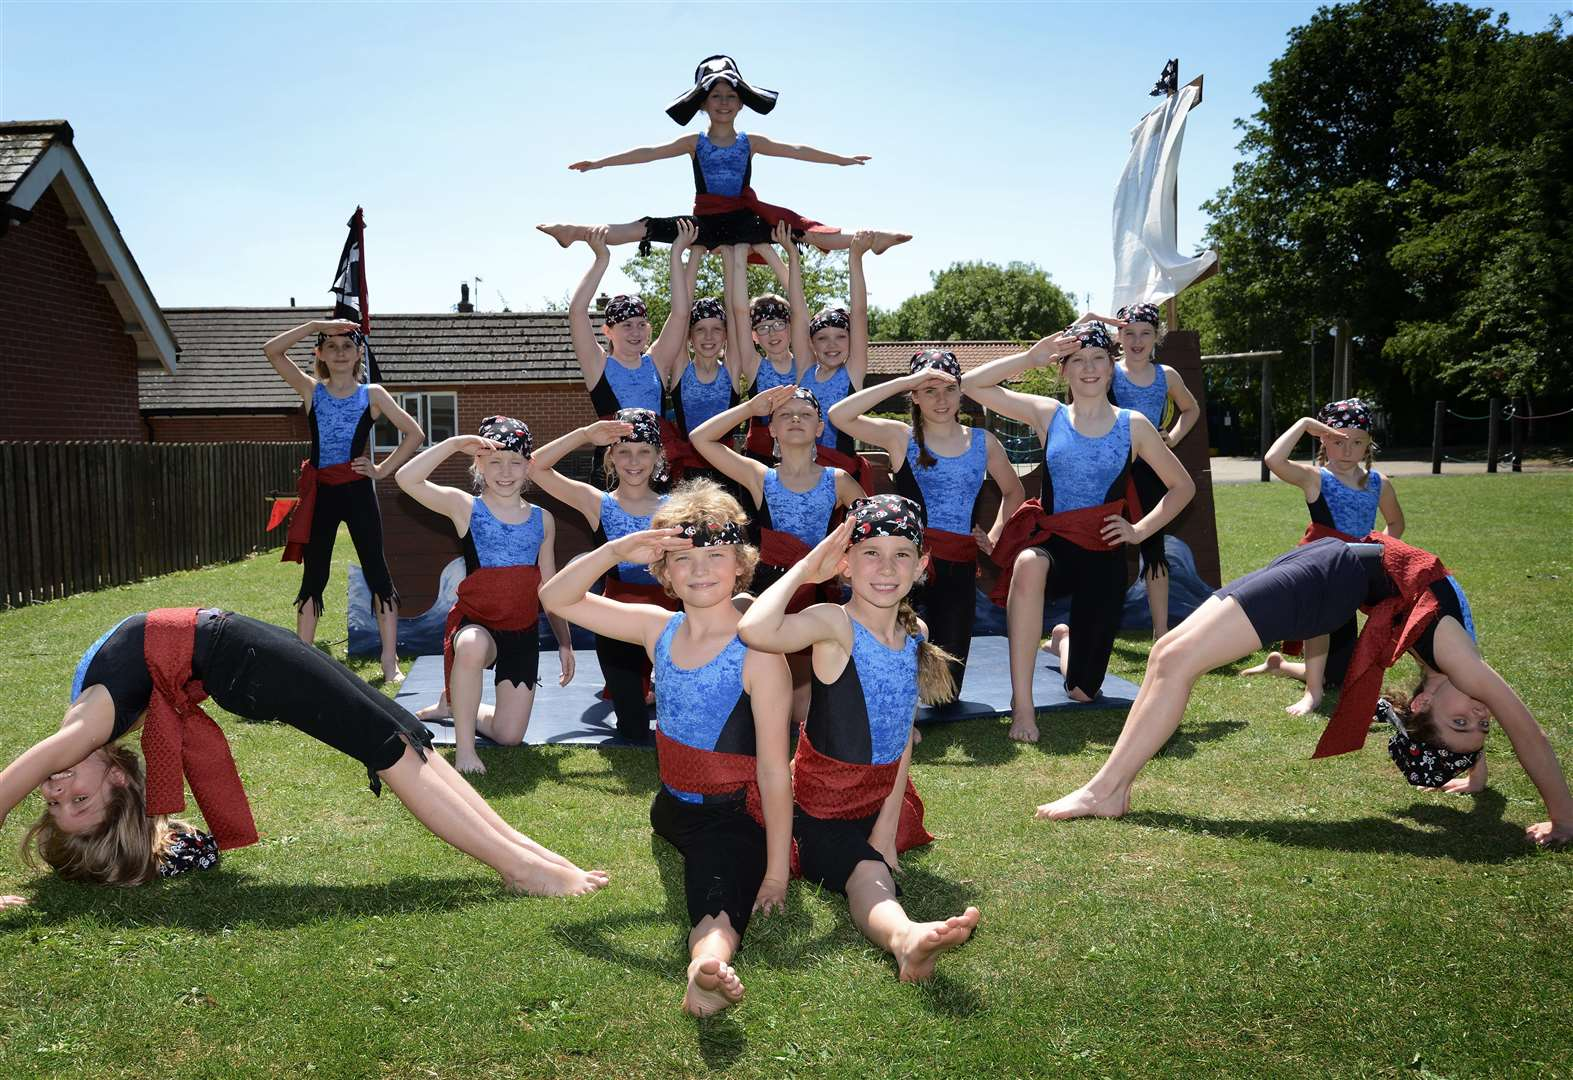 Ahoy there! Allington gymnast 'pirates' perform at fete